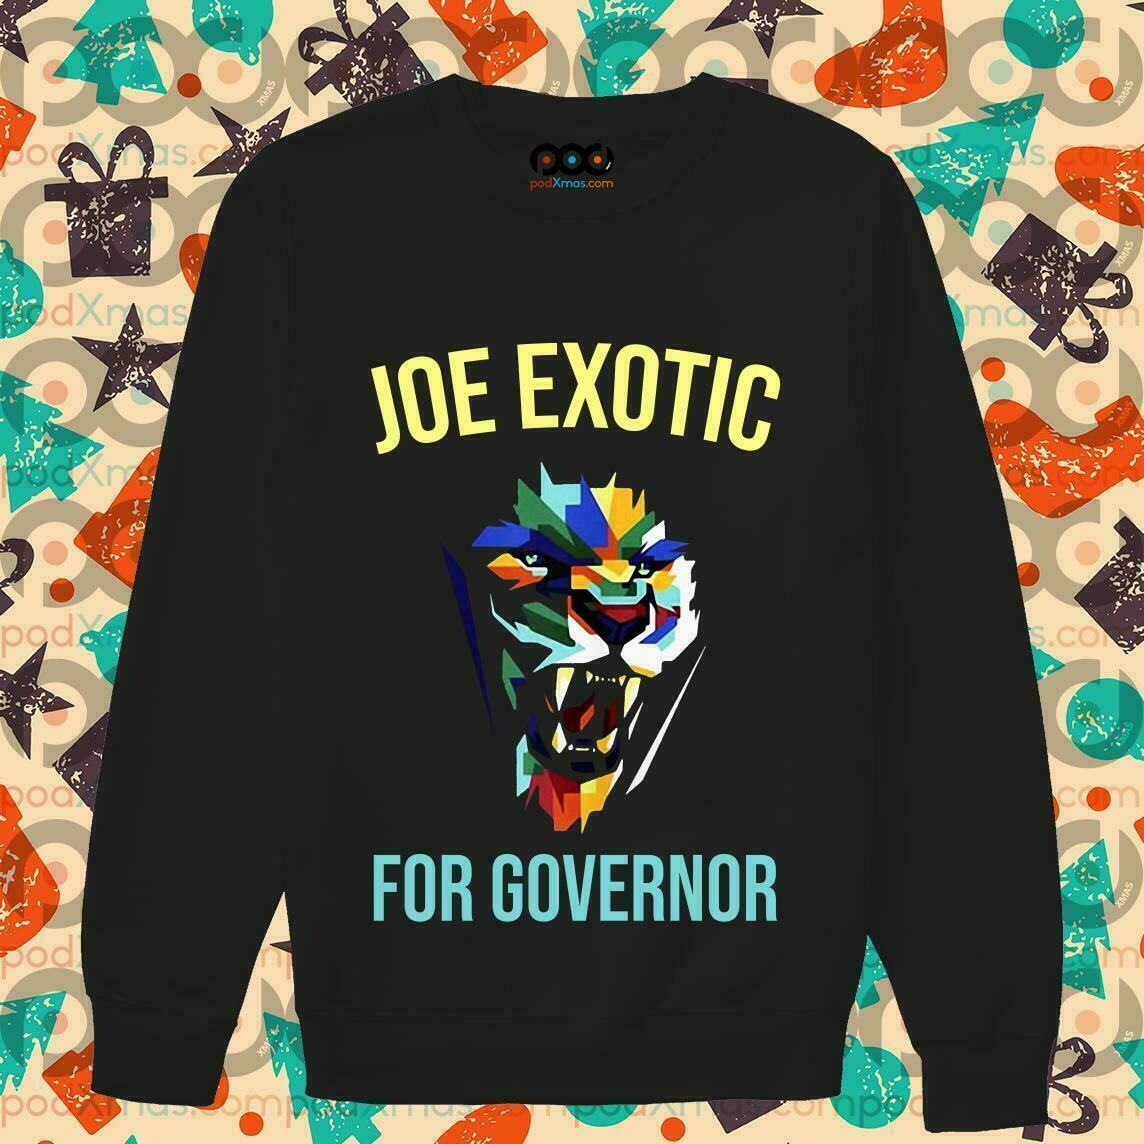 Joe Exotic For Governor T-Shirt